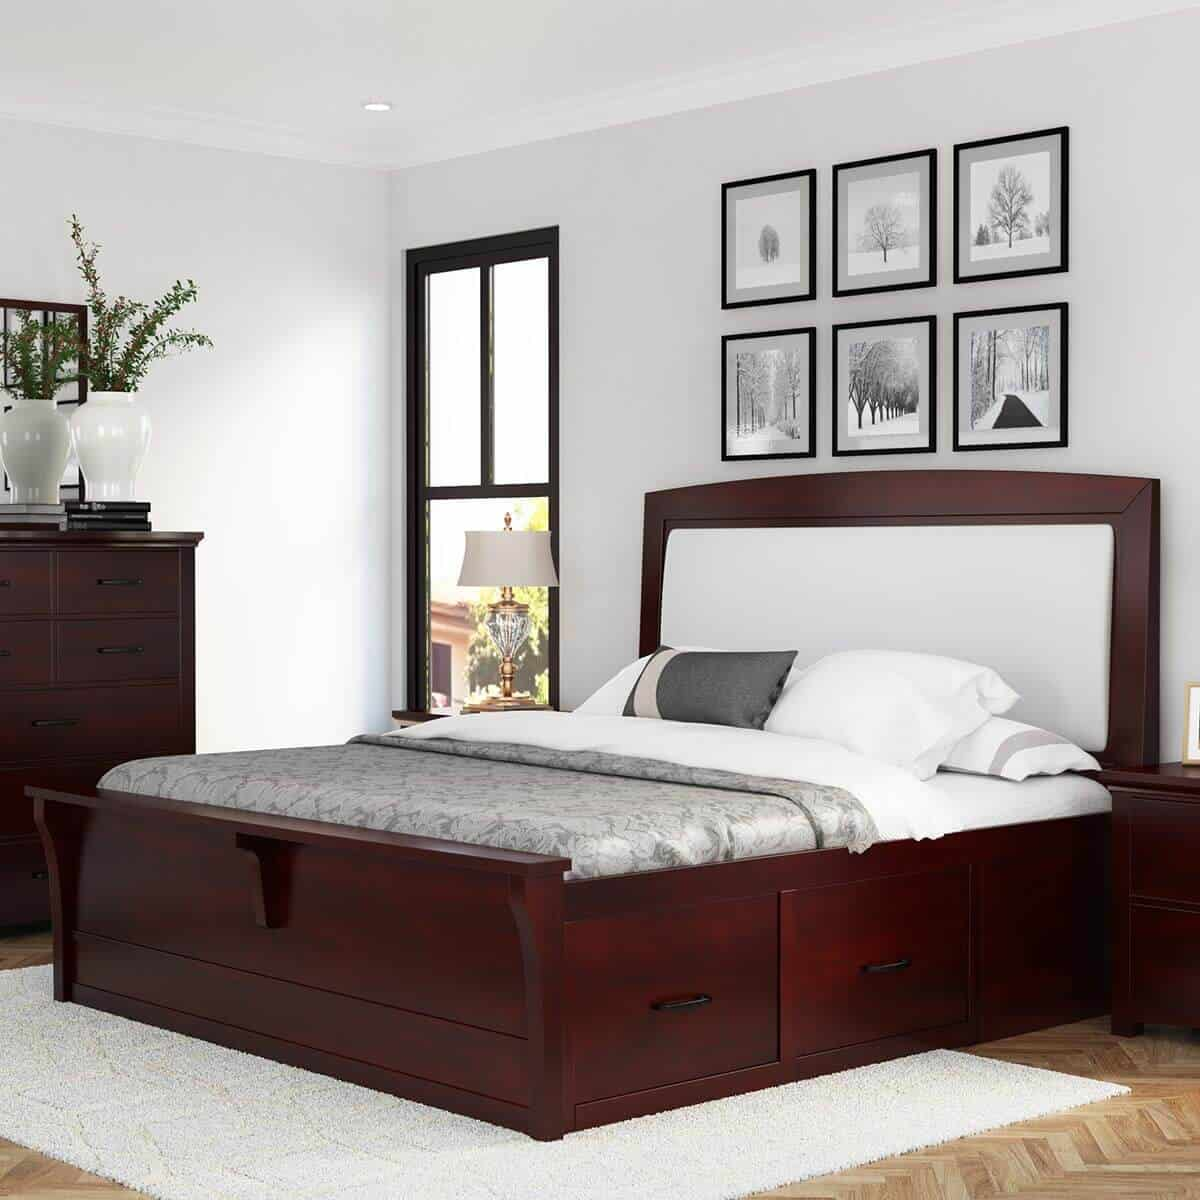 solid mahogany plywood bed design with storage space